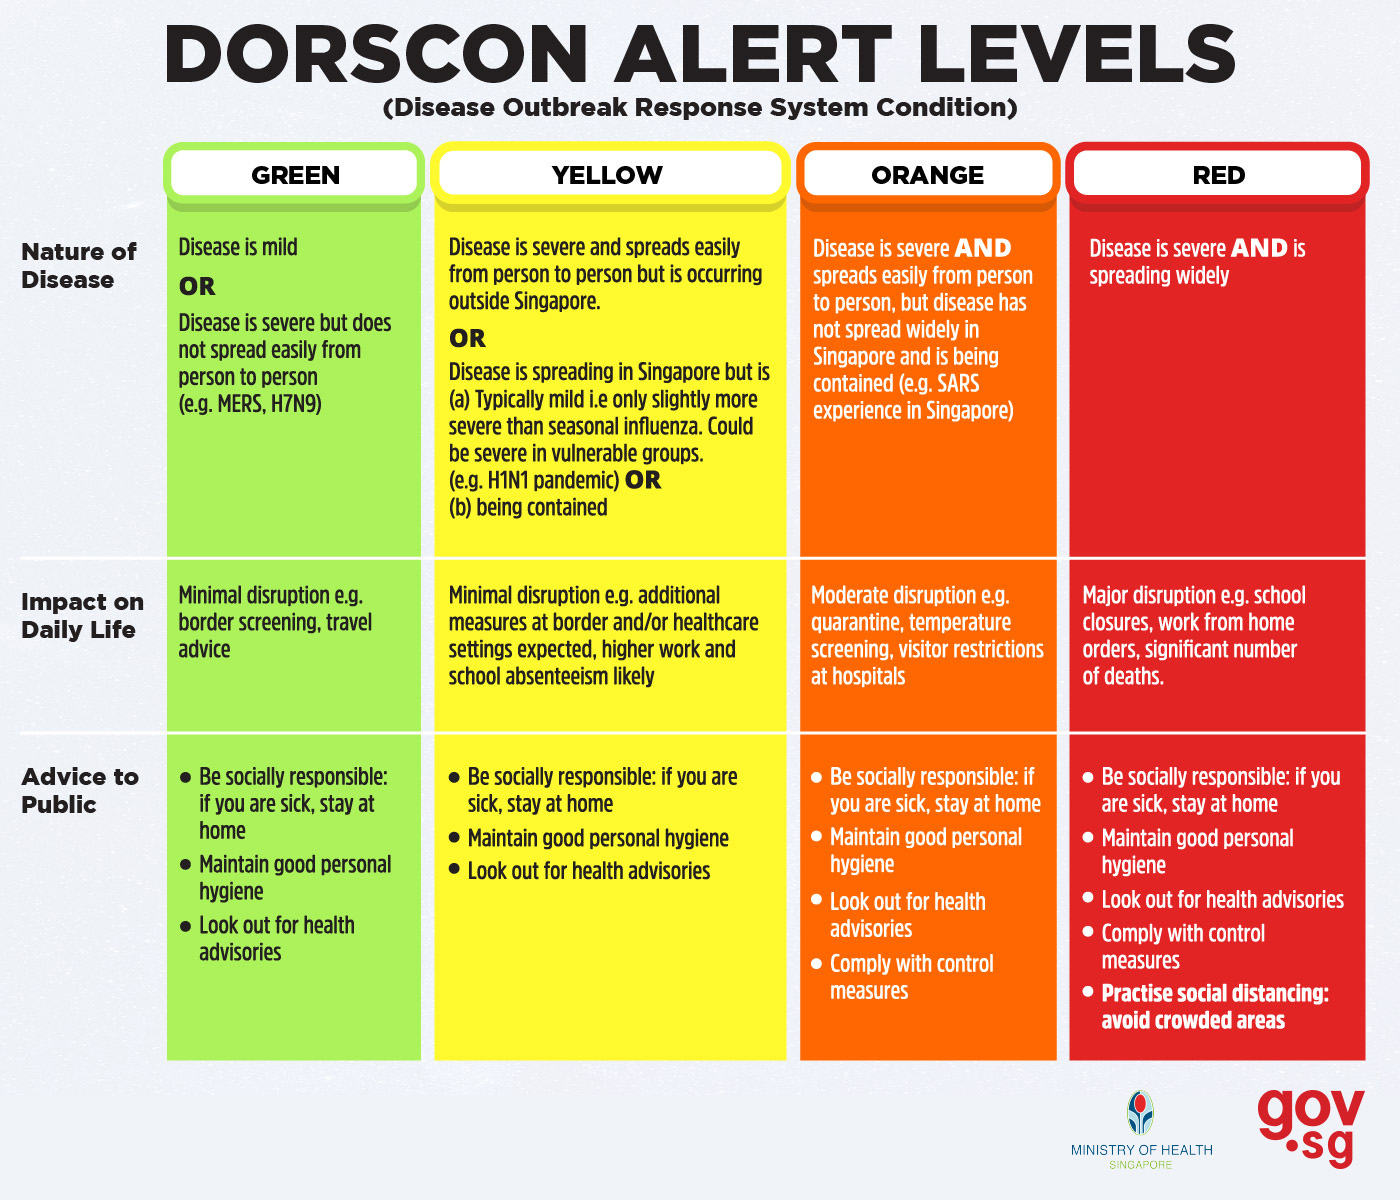 DORSCON Alert Levels Singapore